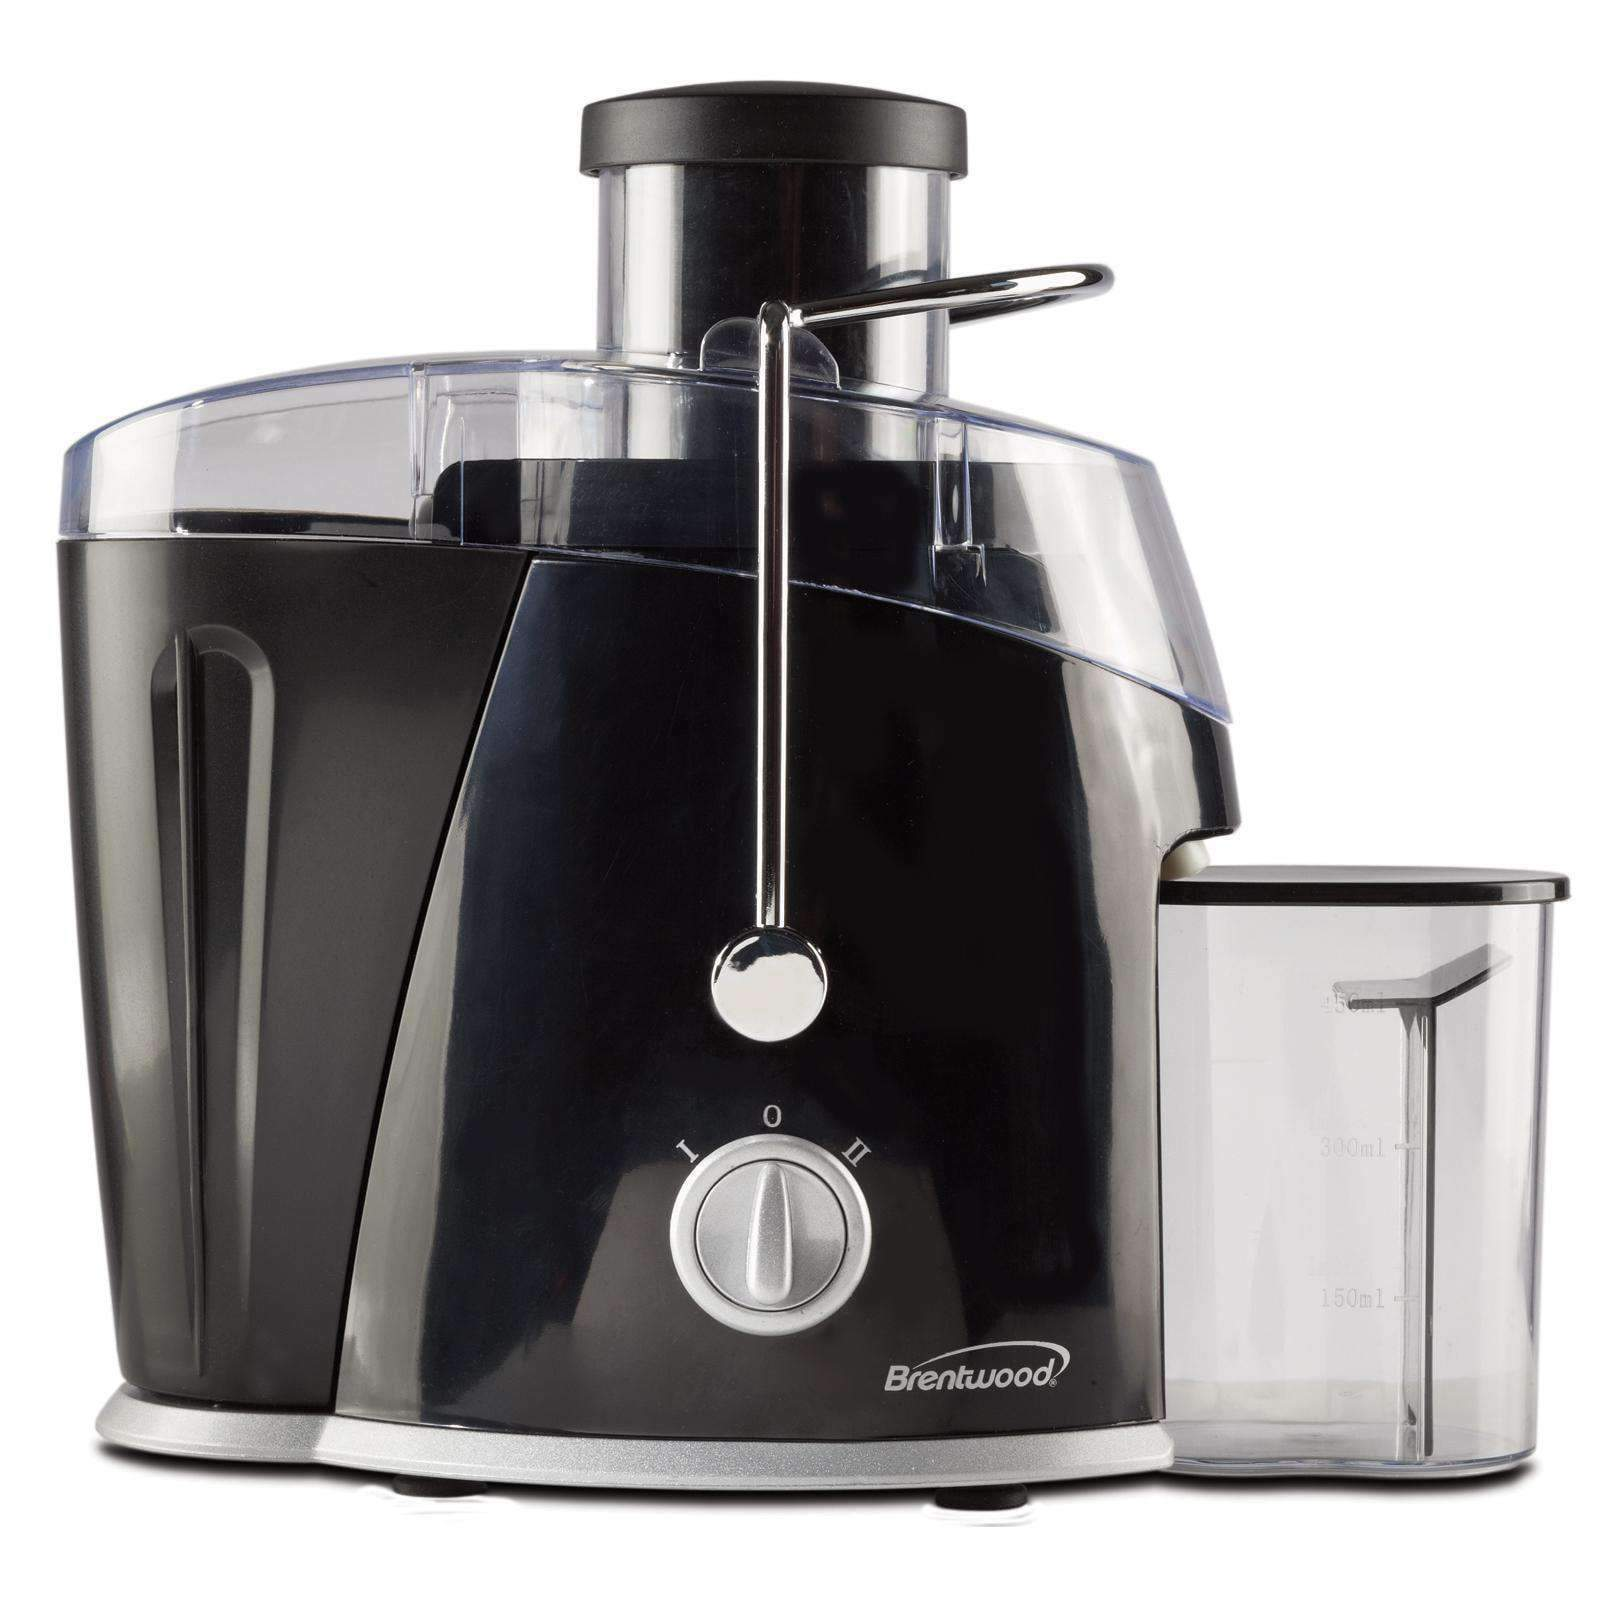 Brentwood Kitchen Appliances Brentwood 2 Speed Juice Extractor in Black